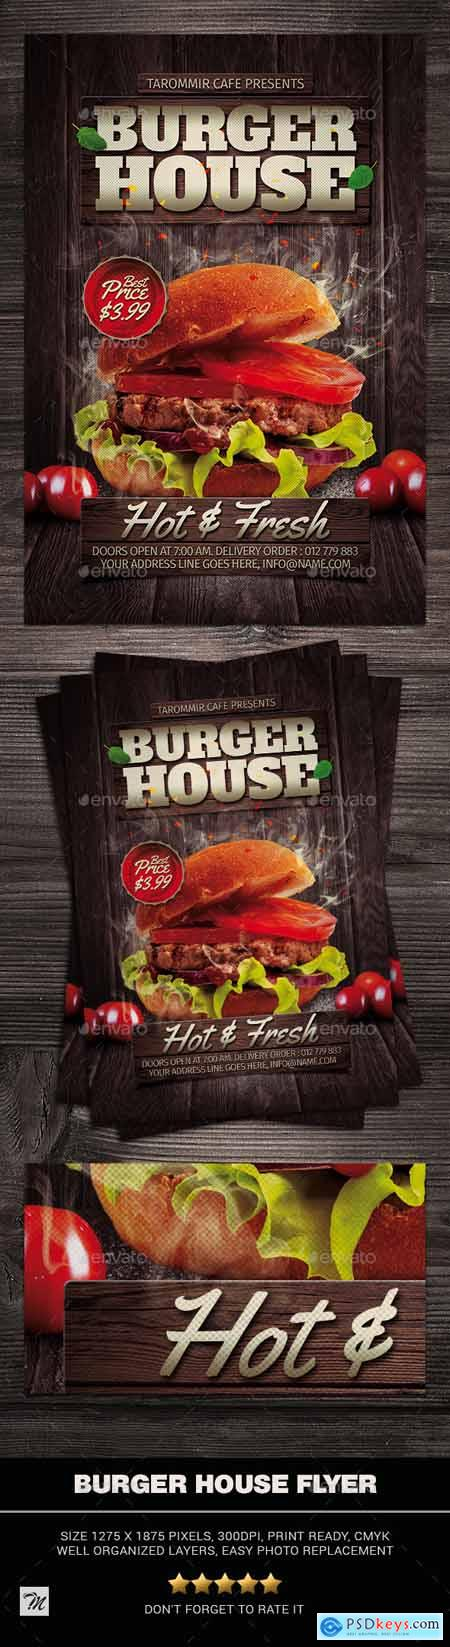 Graphicriver Burger House Flyer